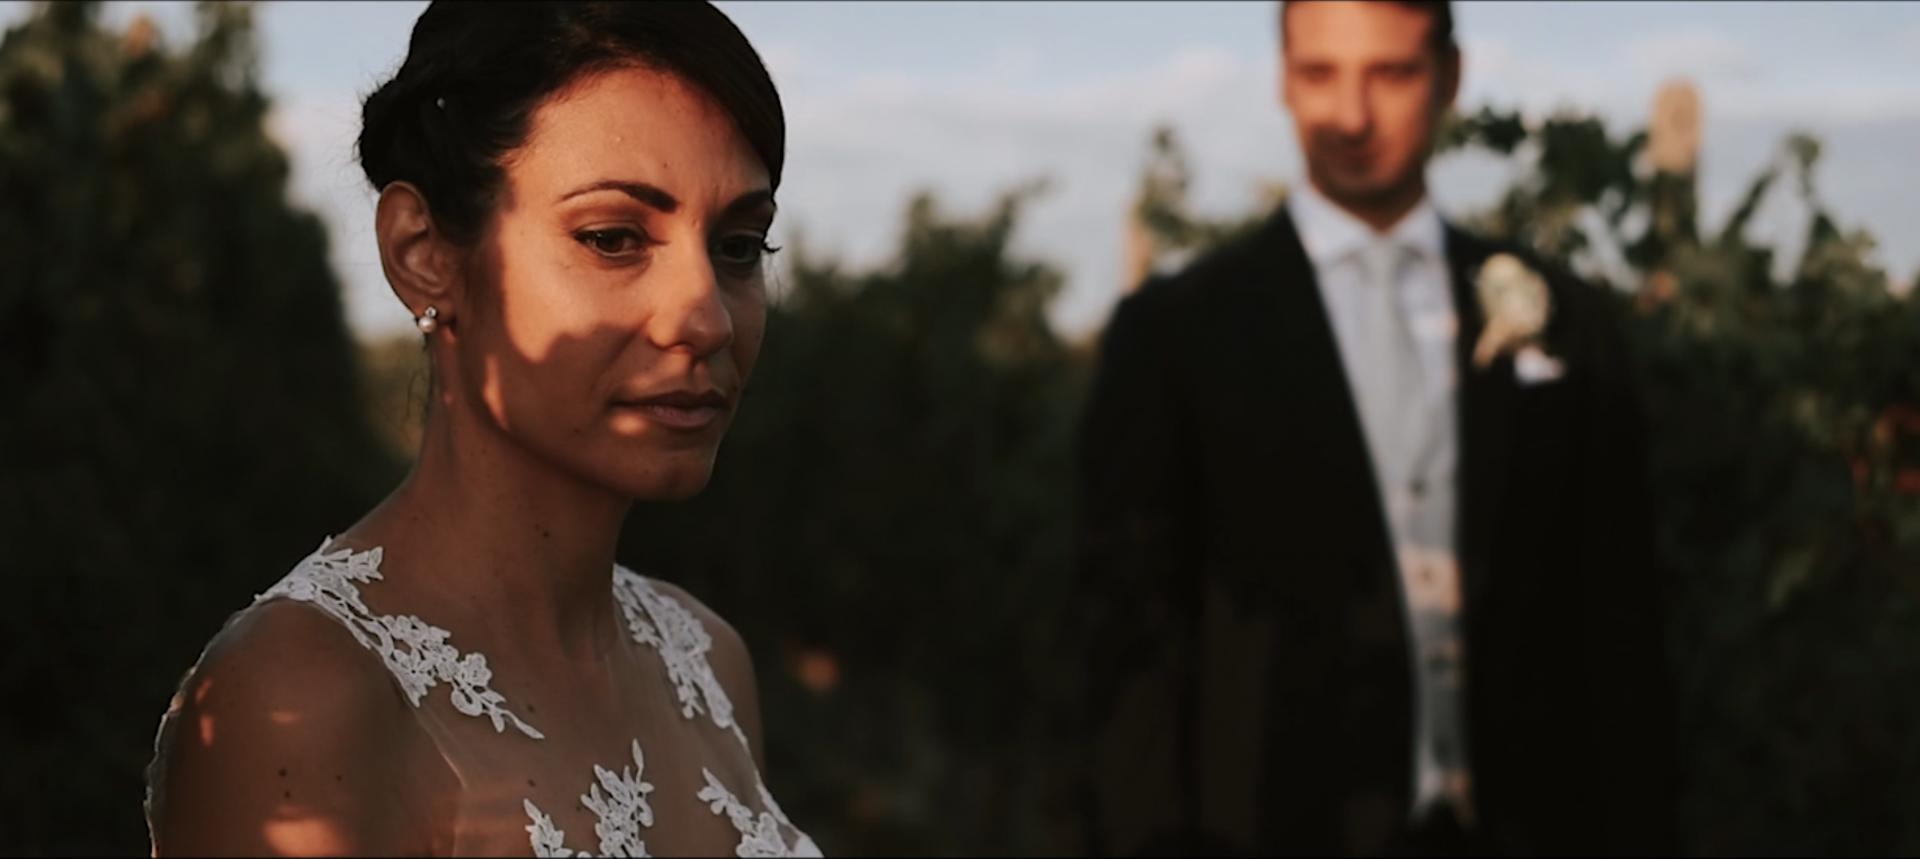 Best Wedding Photographer, Wedding in Italy, Wedding in Piemonte, Wedding in Brolo, Best Photographer in Italy, video, wedding films